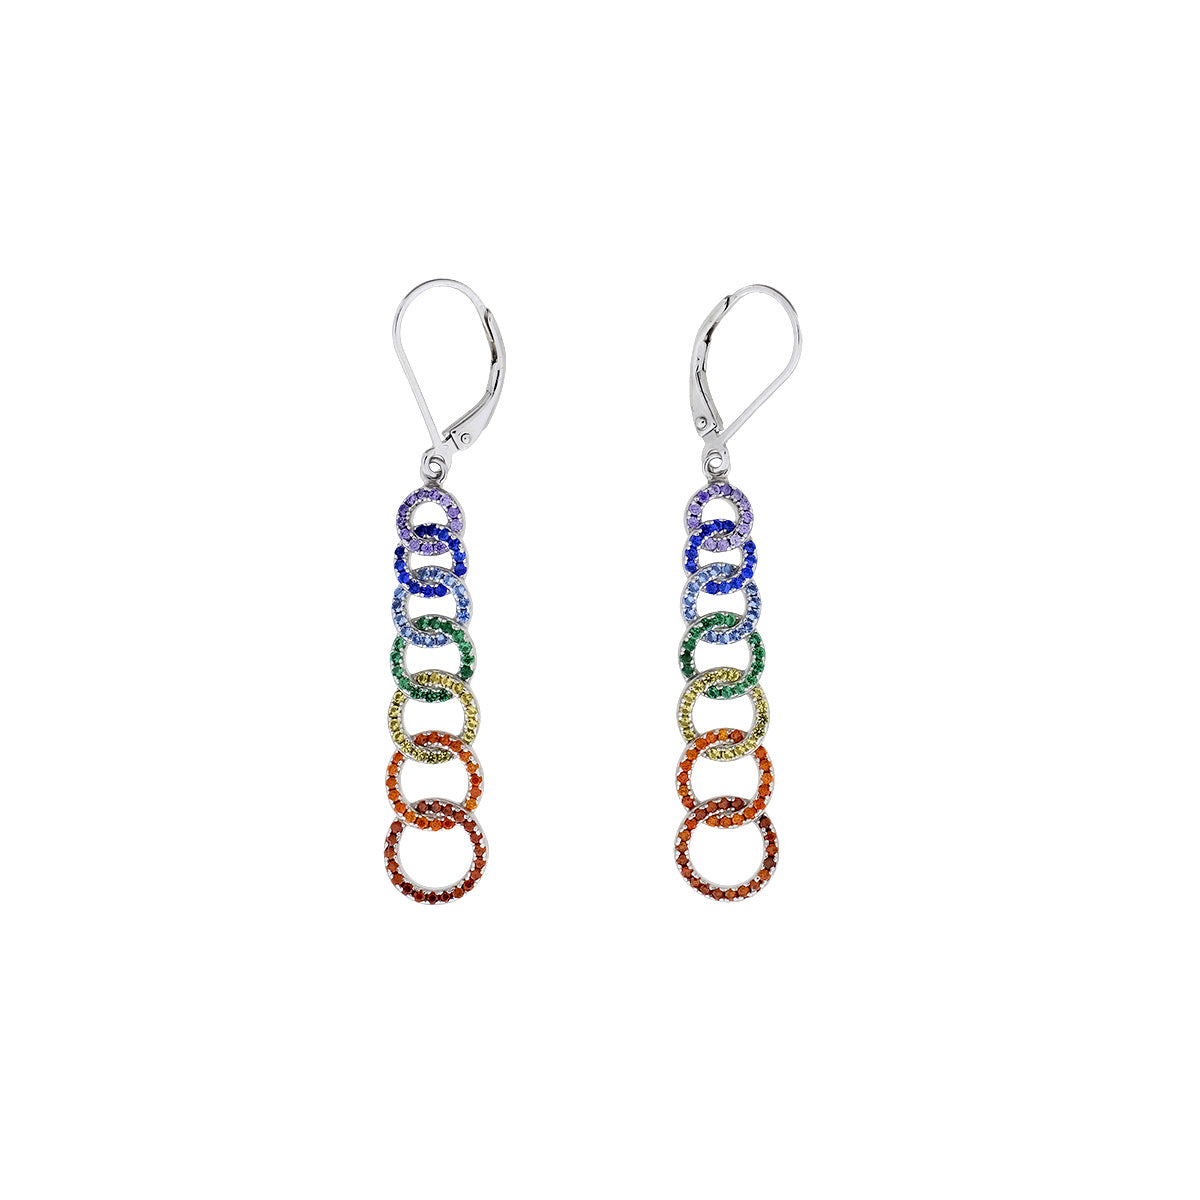 Rainbow Pavé Seven Interlocking Circles Drop Earrings